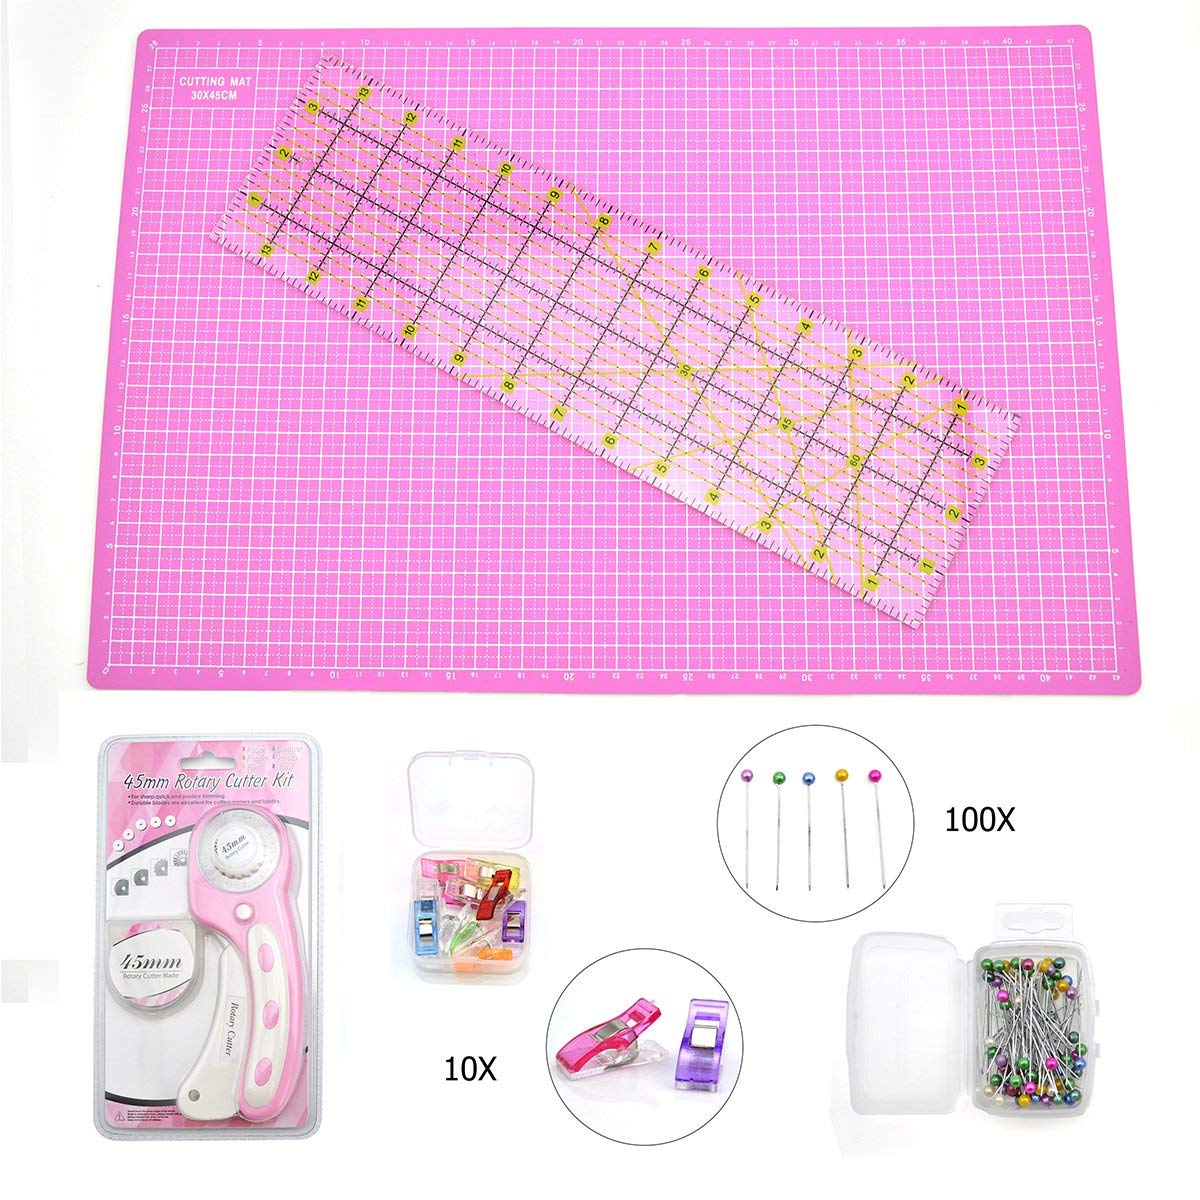 Rotary Cutter Quilting Kit, Set of 6 (6.5X24 Ruler, 18X24 Mat, 45mm Cutter, 45mm Blades 5 Pack,50pc Head pins,10pcs Clips)